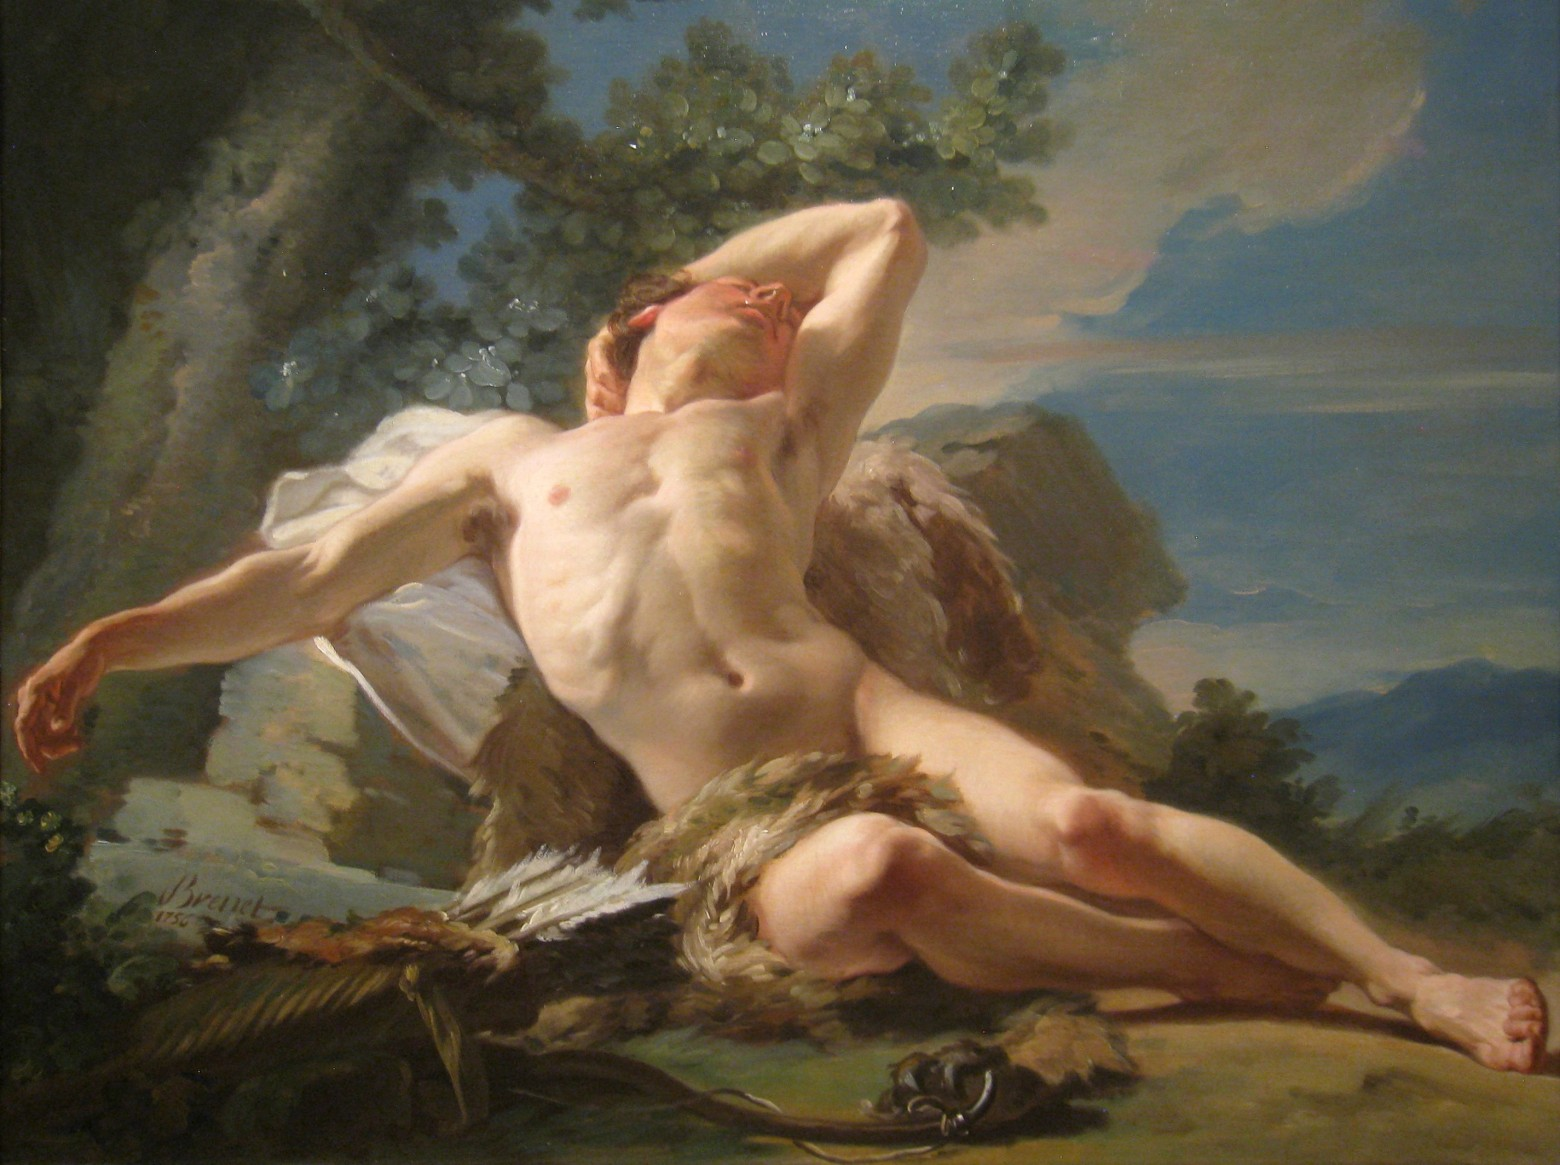 Sleeping_Encymion_1756_by_Nicolas-Guy_Brenet_1728-1792_-_IMG_7257-e1407174310547